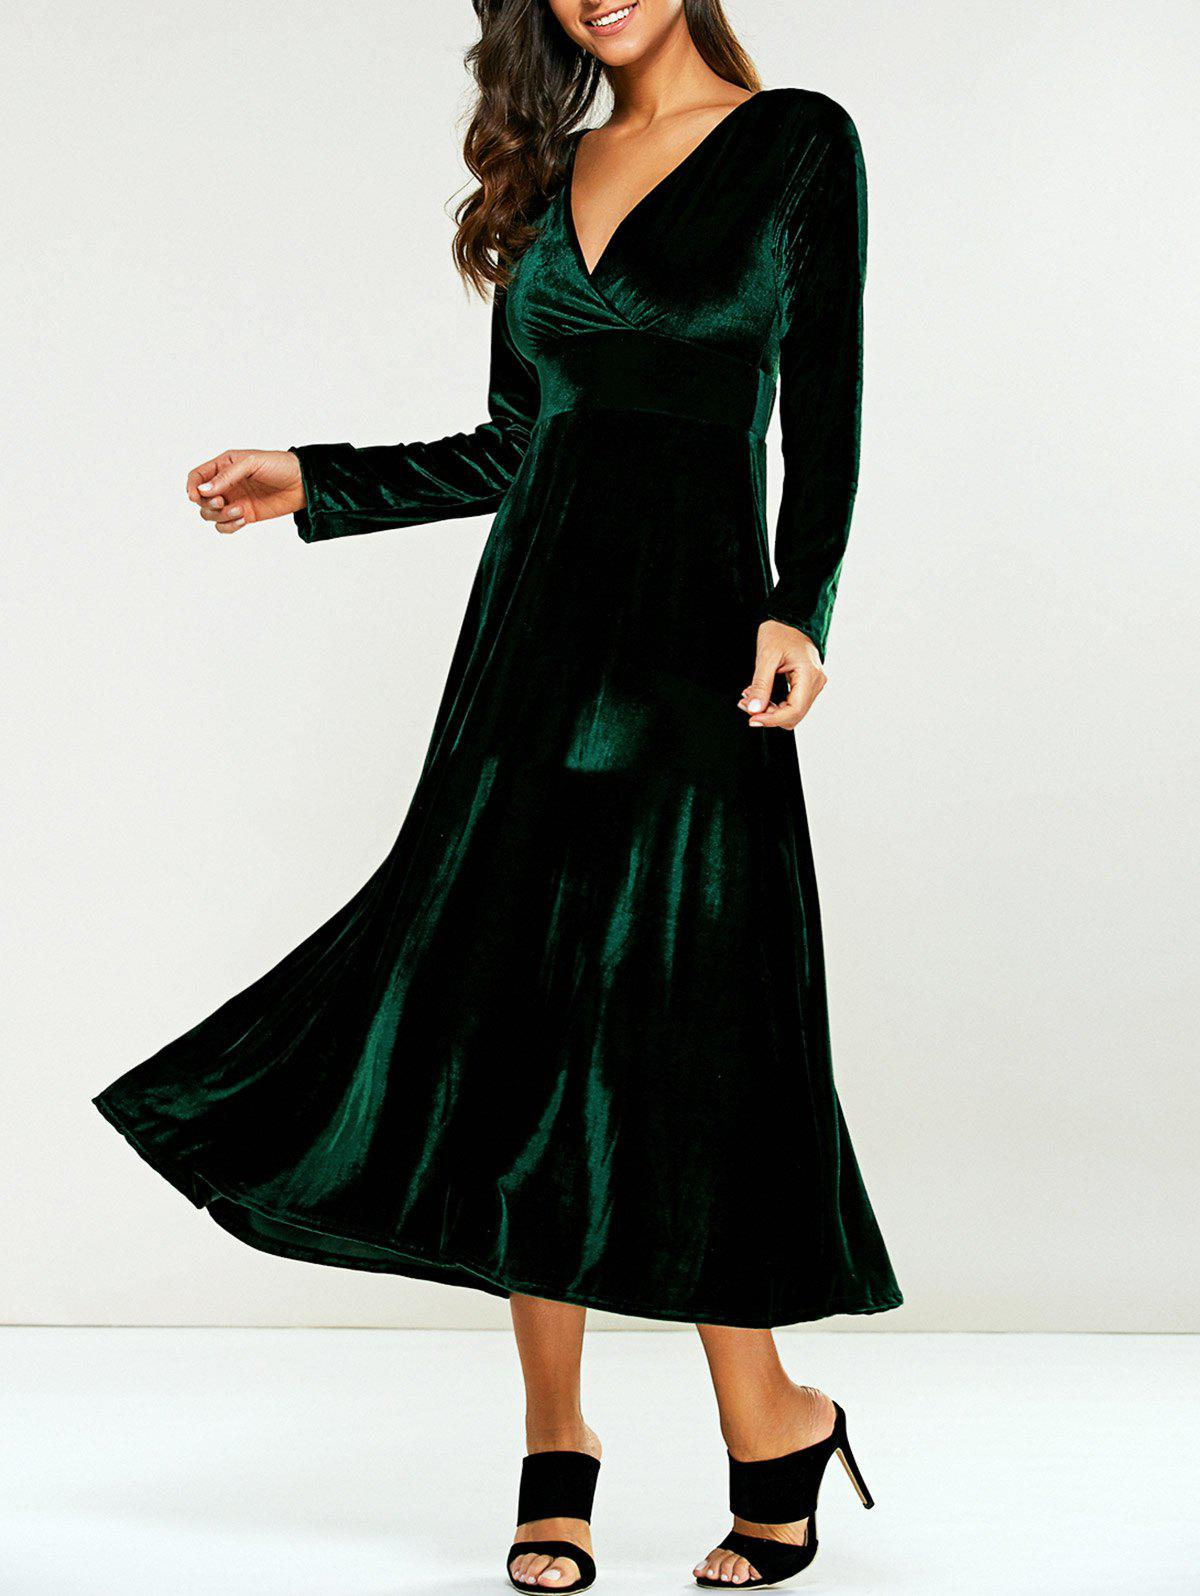 Surplice Velvet Tea Length Long Sleeve DressWOMEN<br><br>Size: 2XL; Color: GREEN; Style: Casual; Material: Polyester; Silhouette: A-Line; Dresses Length: Mid-Calf; Neckline: V-Neck; Sleeve Length: Long Sleeves; Pattern Type: Solid; With Belt: No; Season: Fall,Spring; Weight: 0.570kg; Package Contents: 1 x Dress;